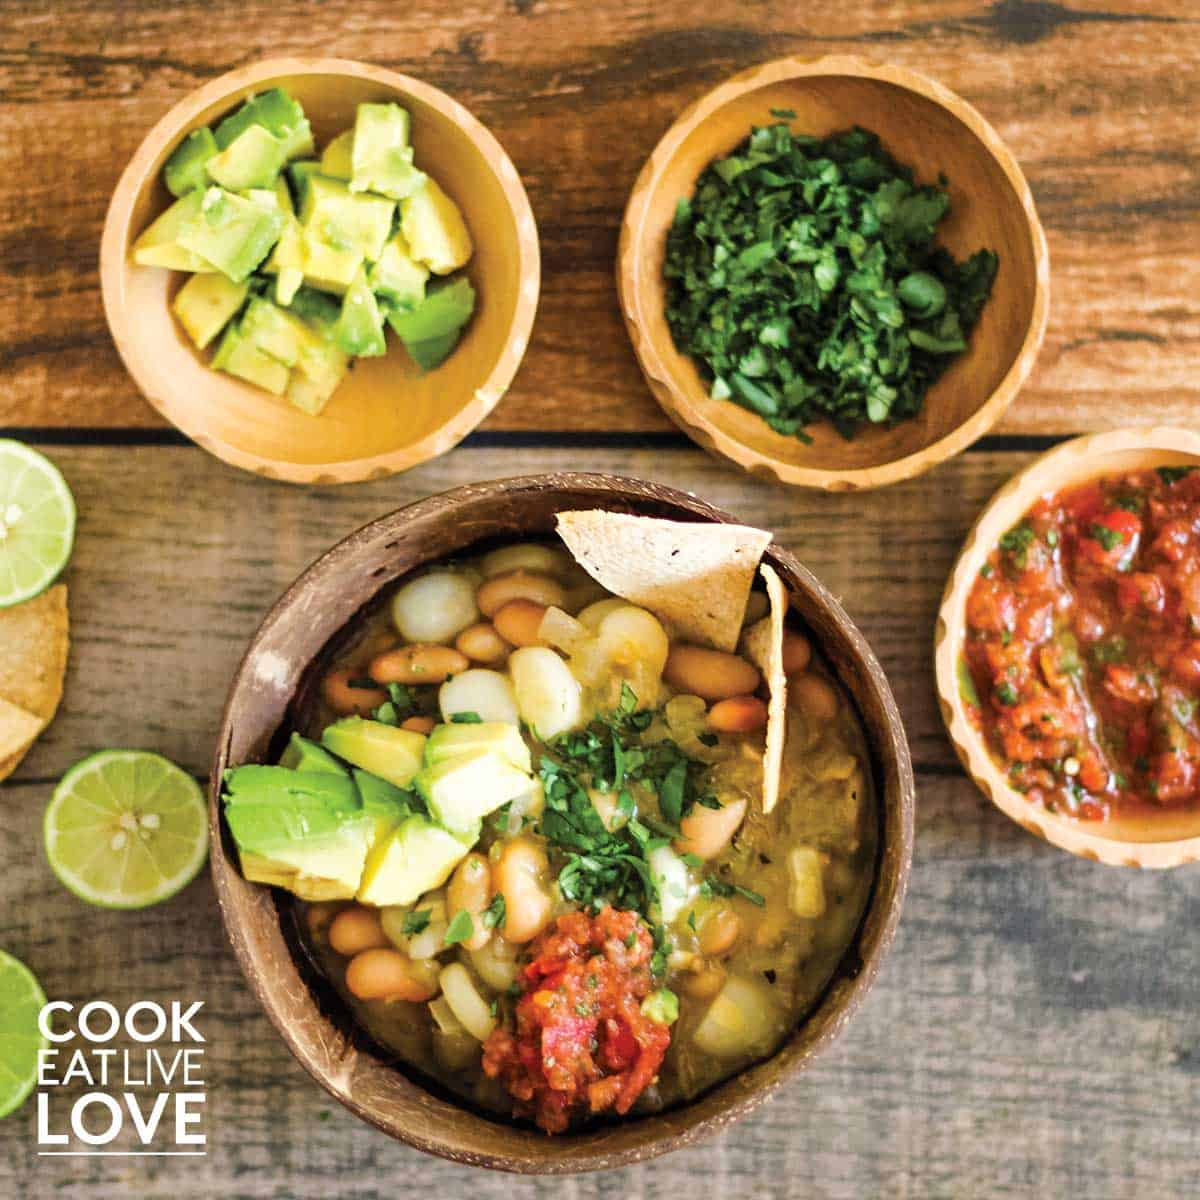 Overhead photo of bowl of white bean chili ready to eat. Shown with some topping ideas including avocado, cilantro and salsa.